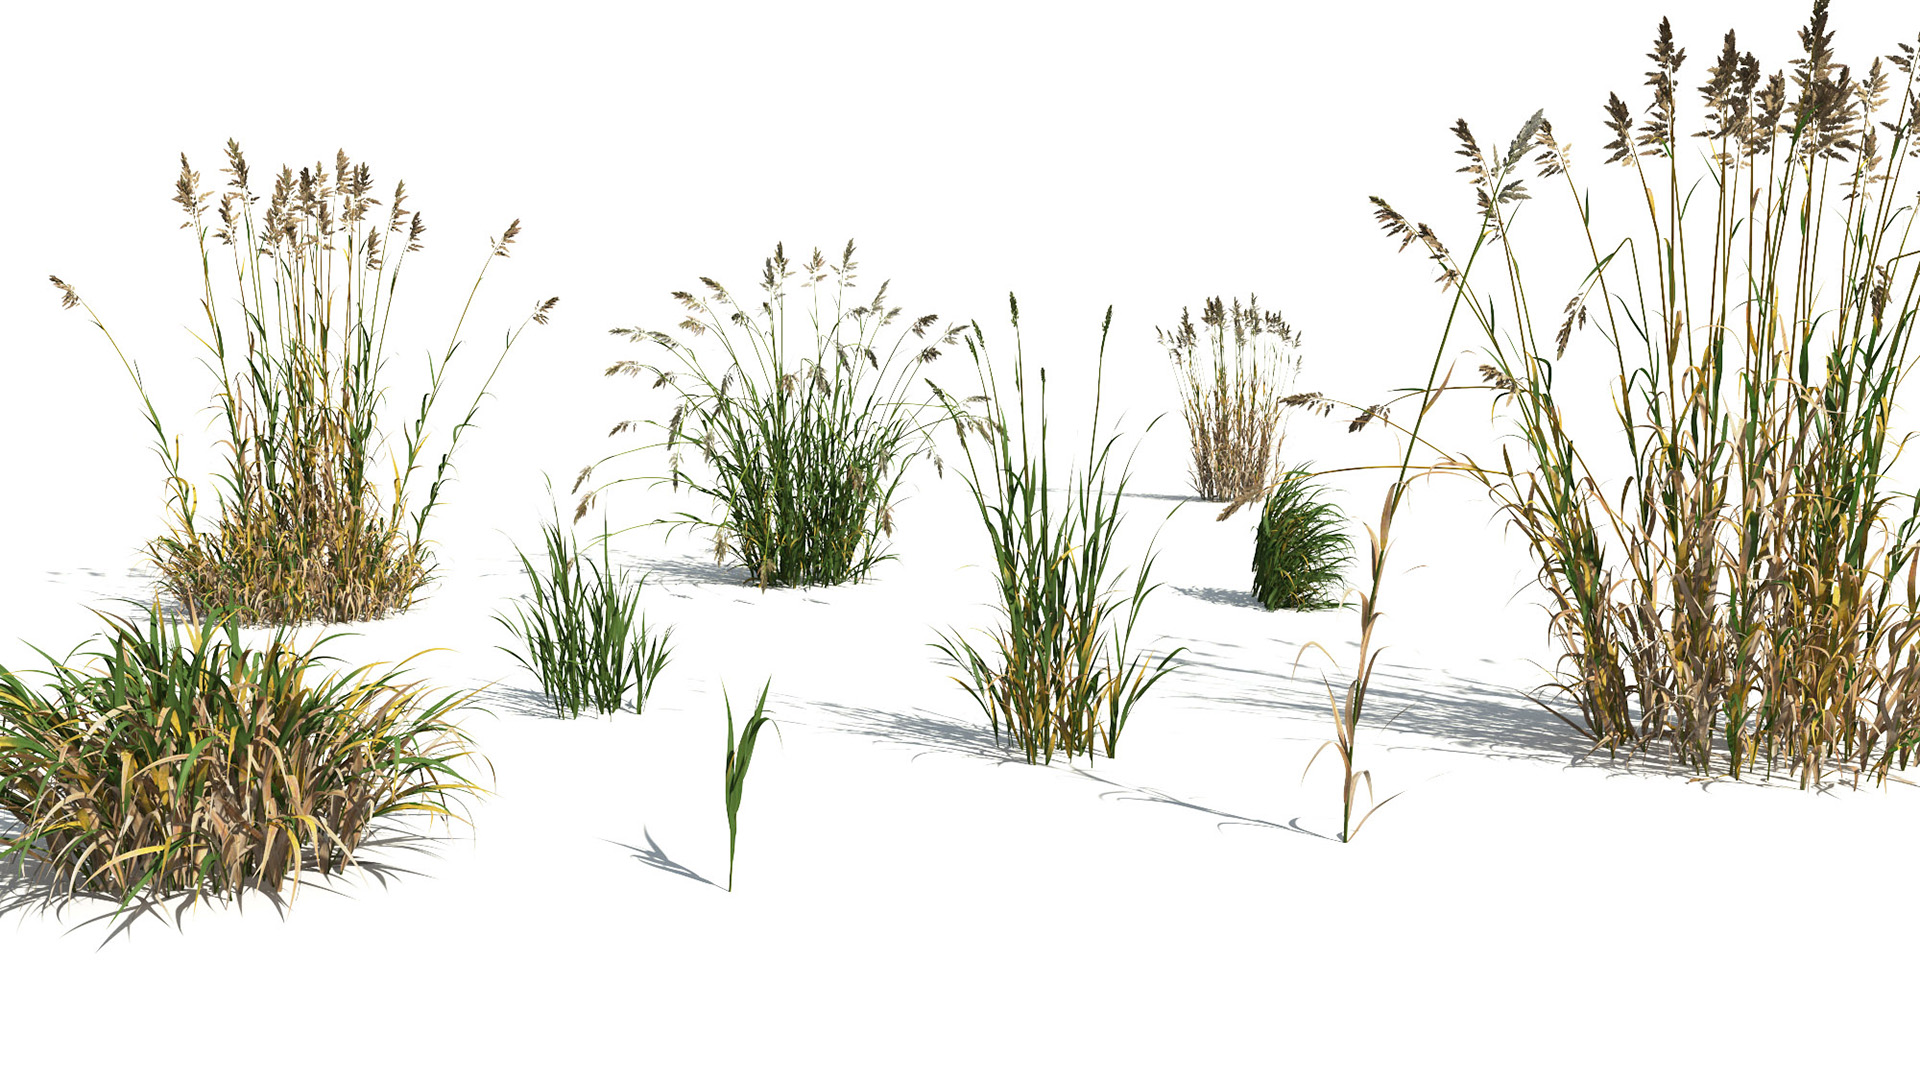 3D model of the Reed canary grass Phalaris arundinacea different presets